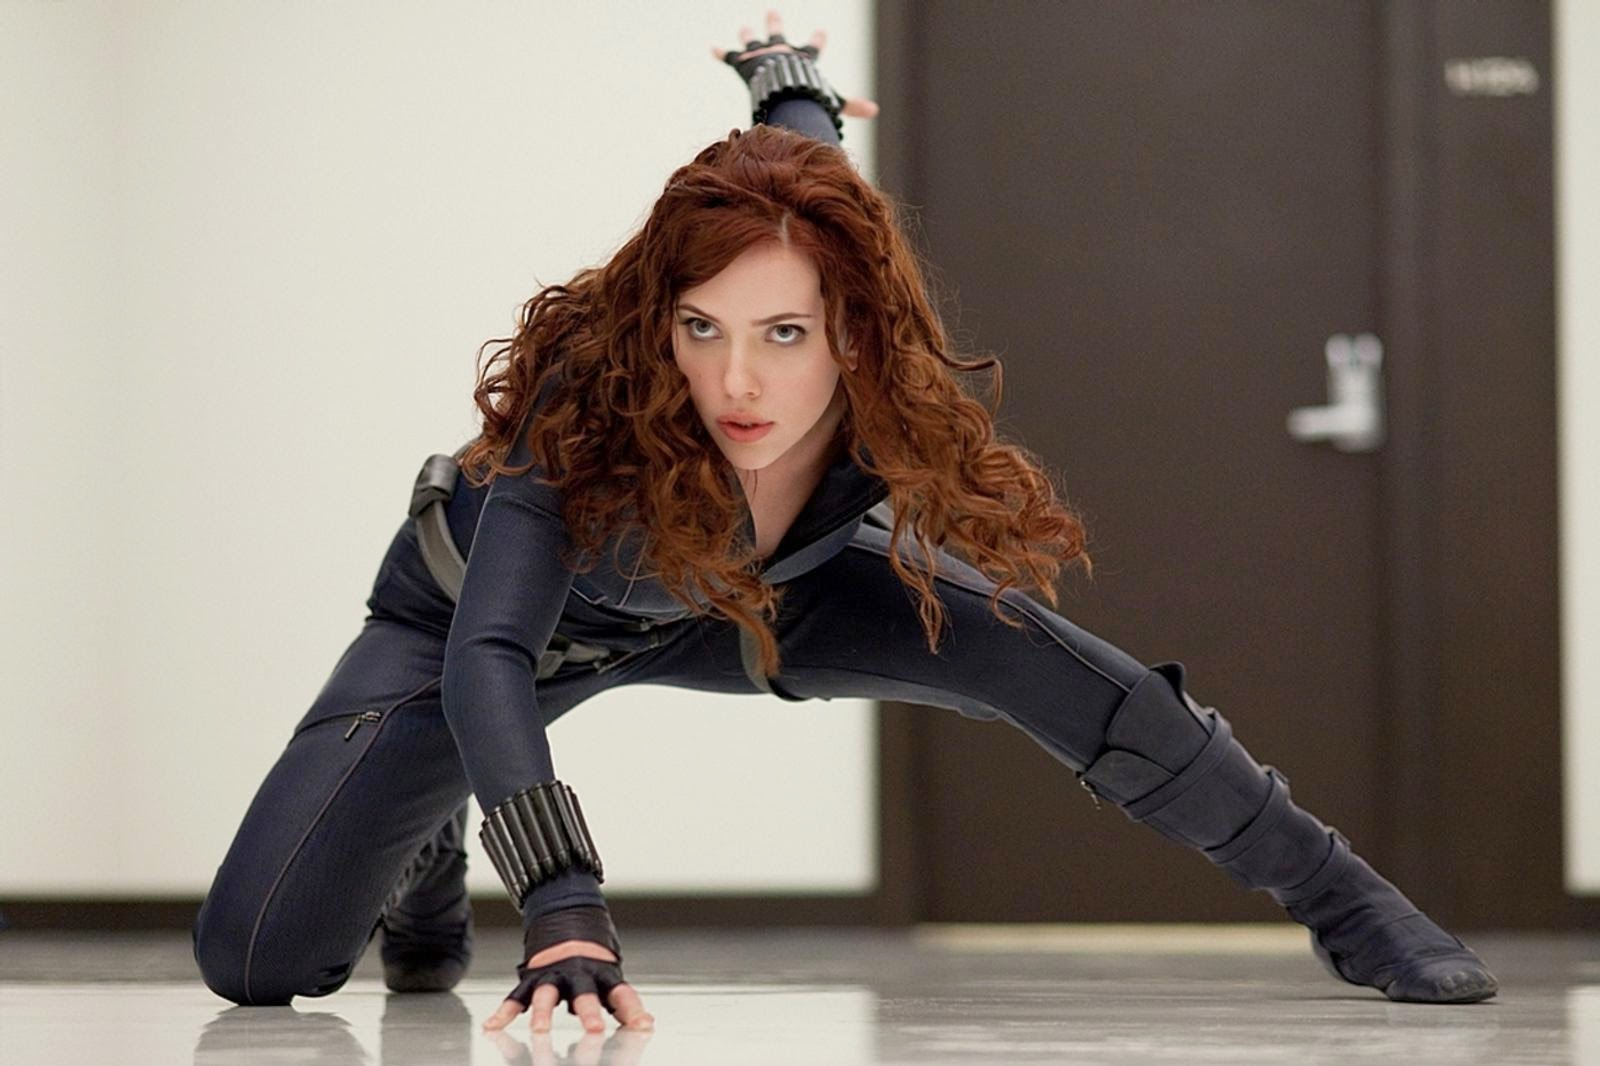 Iron Man 2: Scarlett Johansson as Natasha Romanoff   | A Constantly Racing Mind